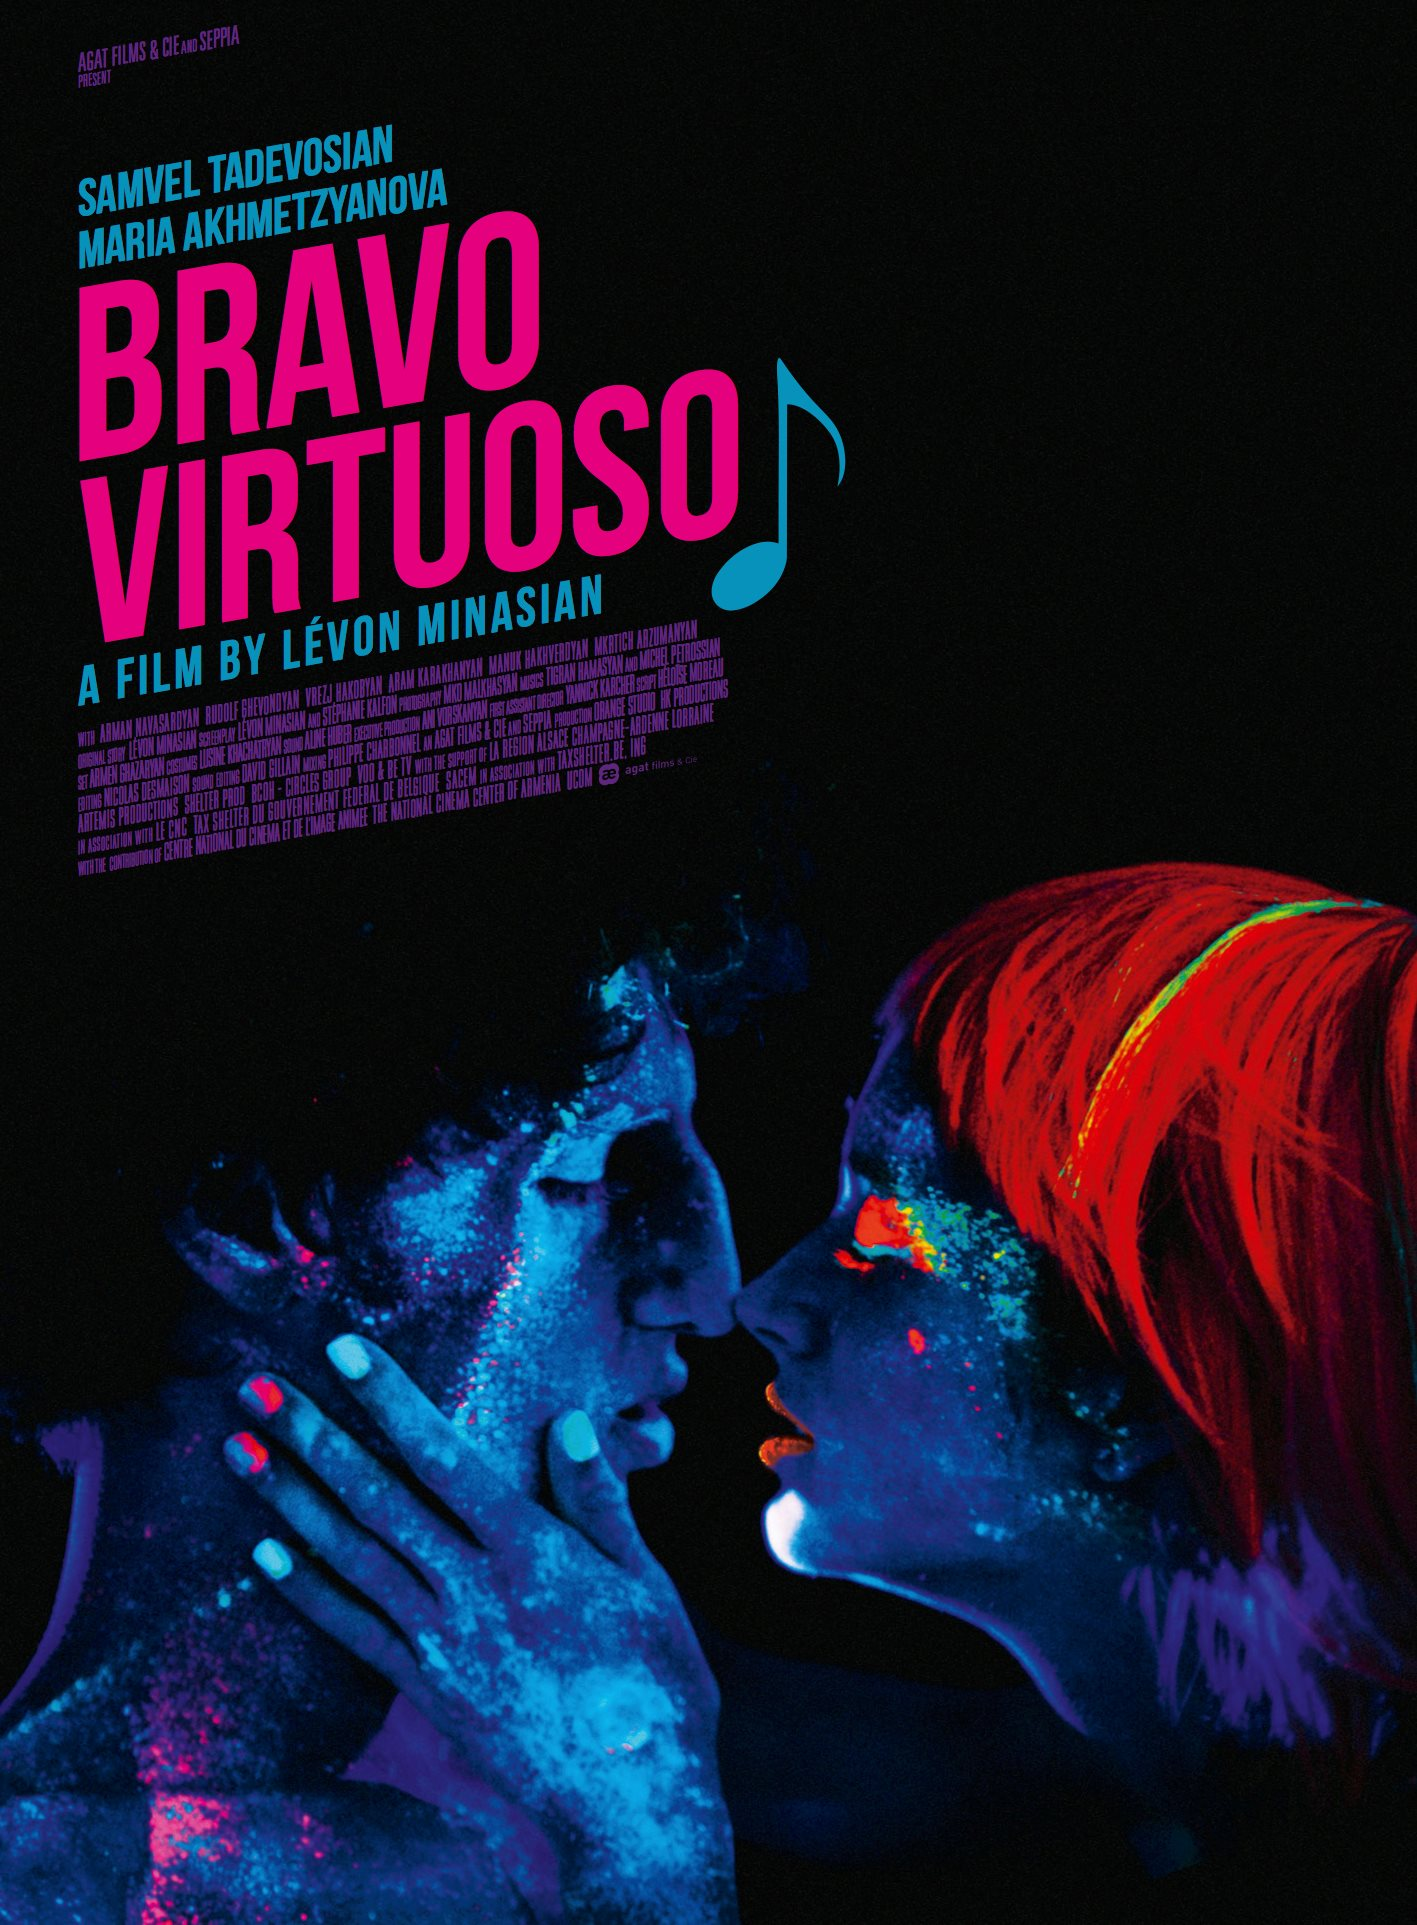 film bravo virtuose